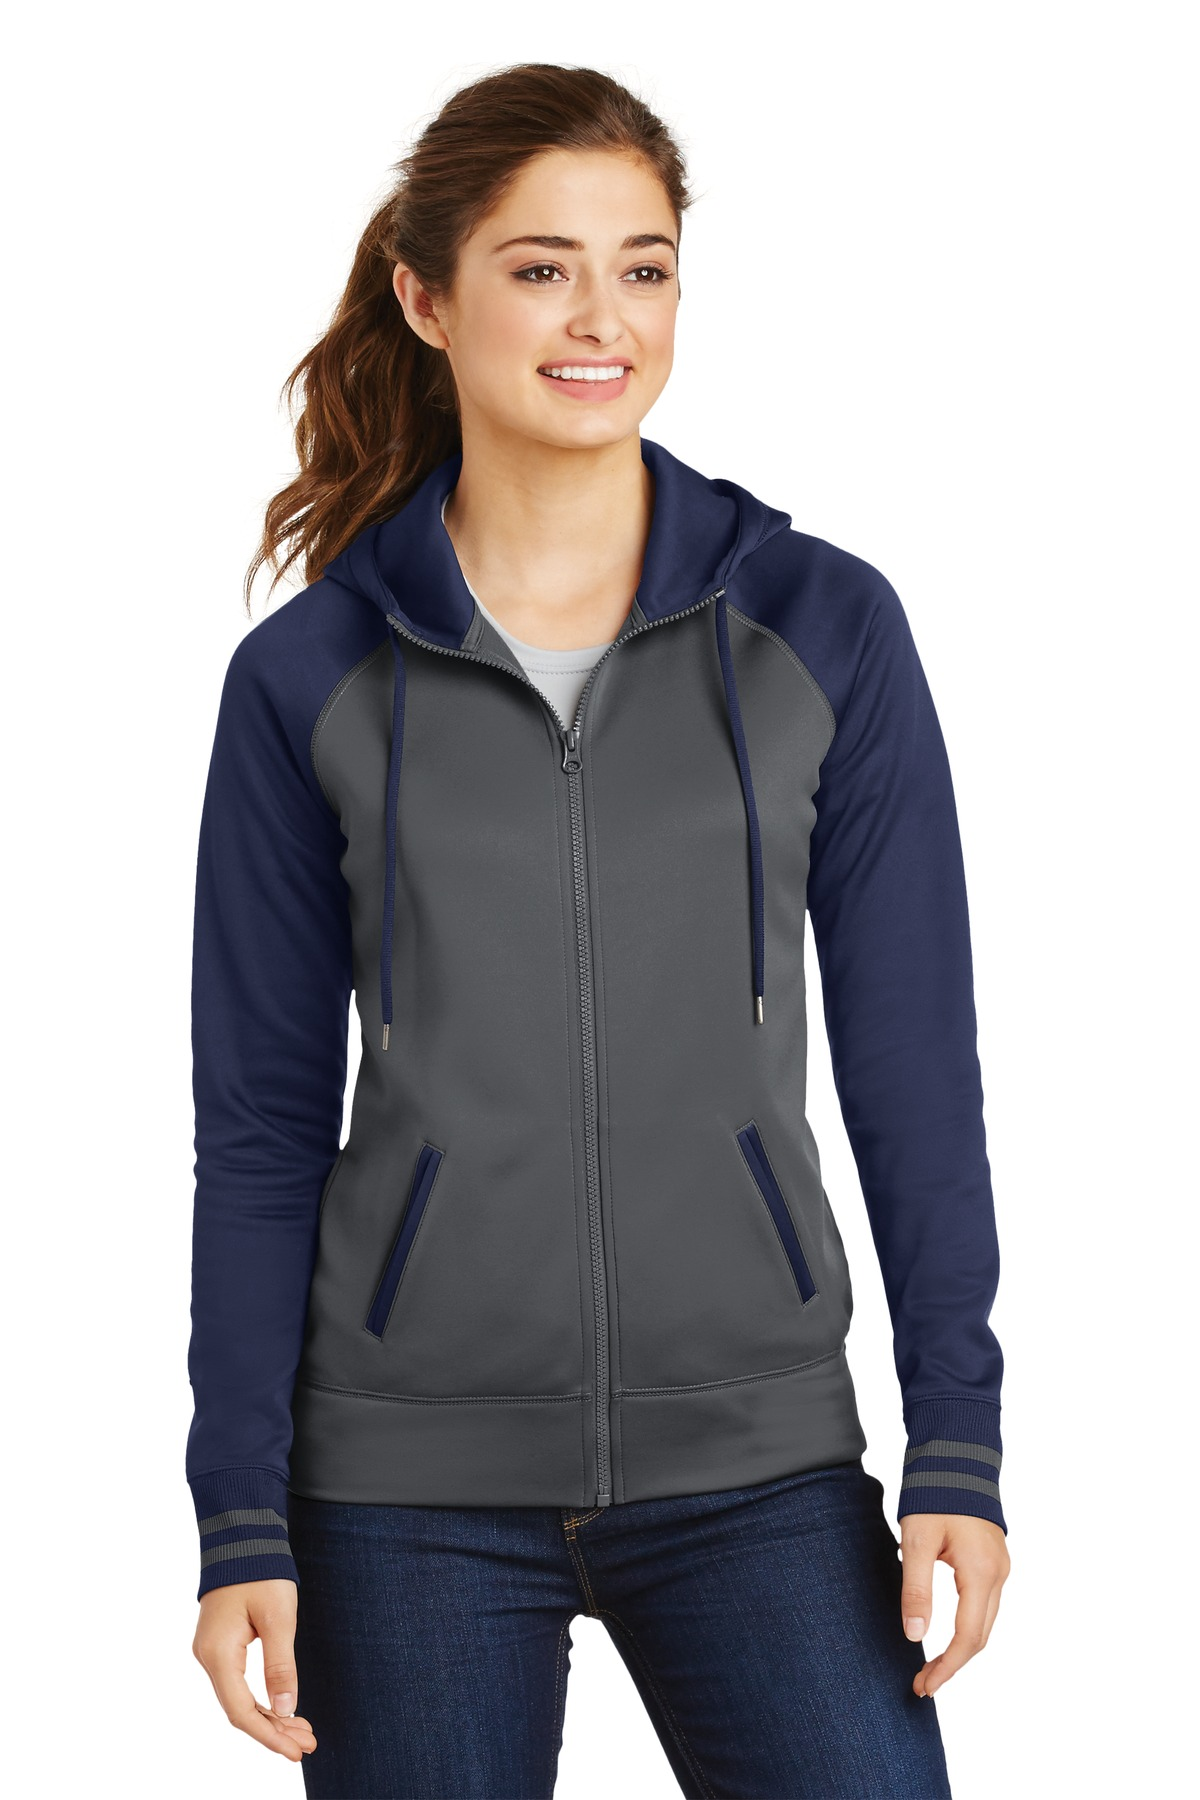 Sport-Tek ®  Ladies Sport-Wick ®  Varsity Fleece Full-Zip Hooded Jacket. LST236 - Dark Smoke Grey/ Navy